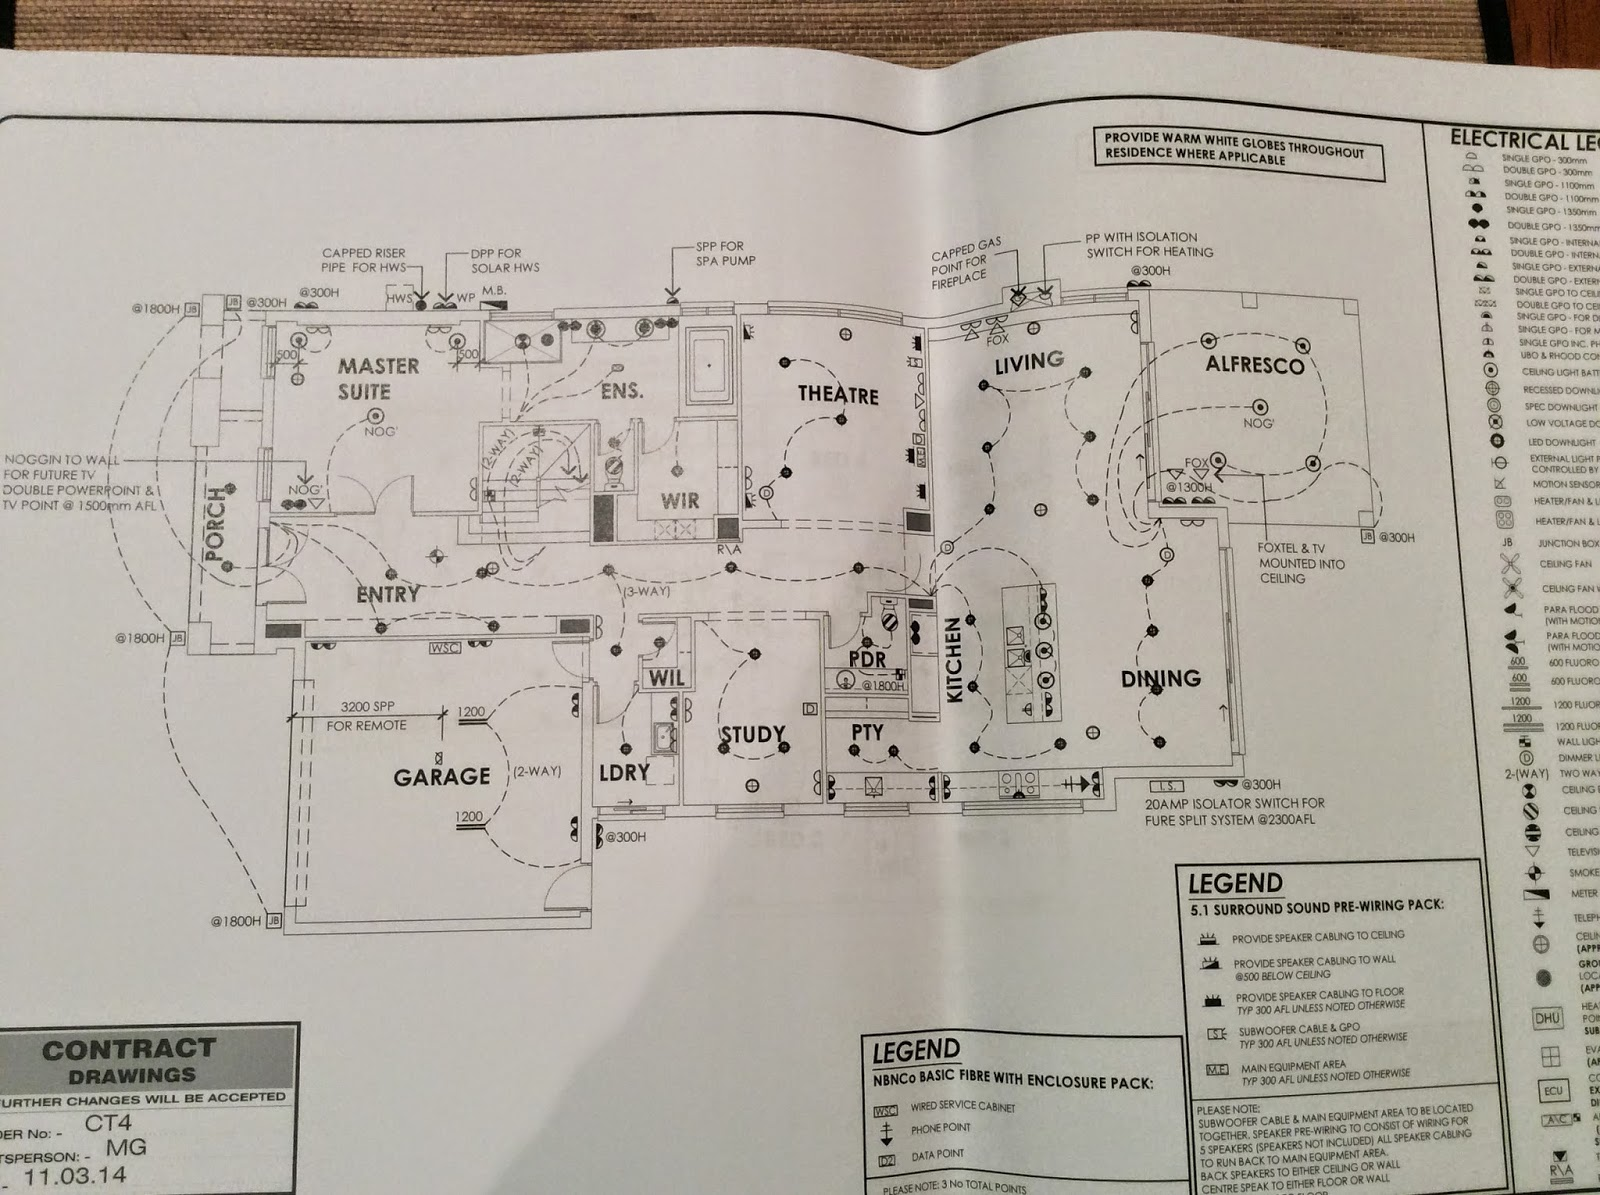 Building Nelson Electrical Plan Grounding First Floor